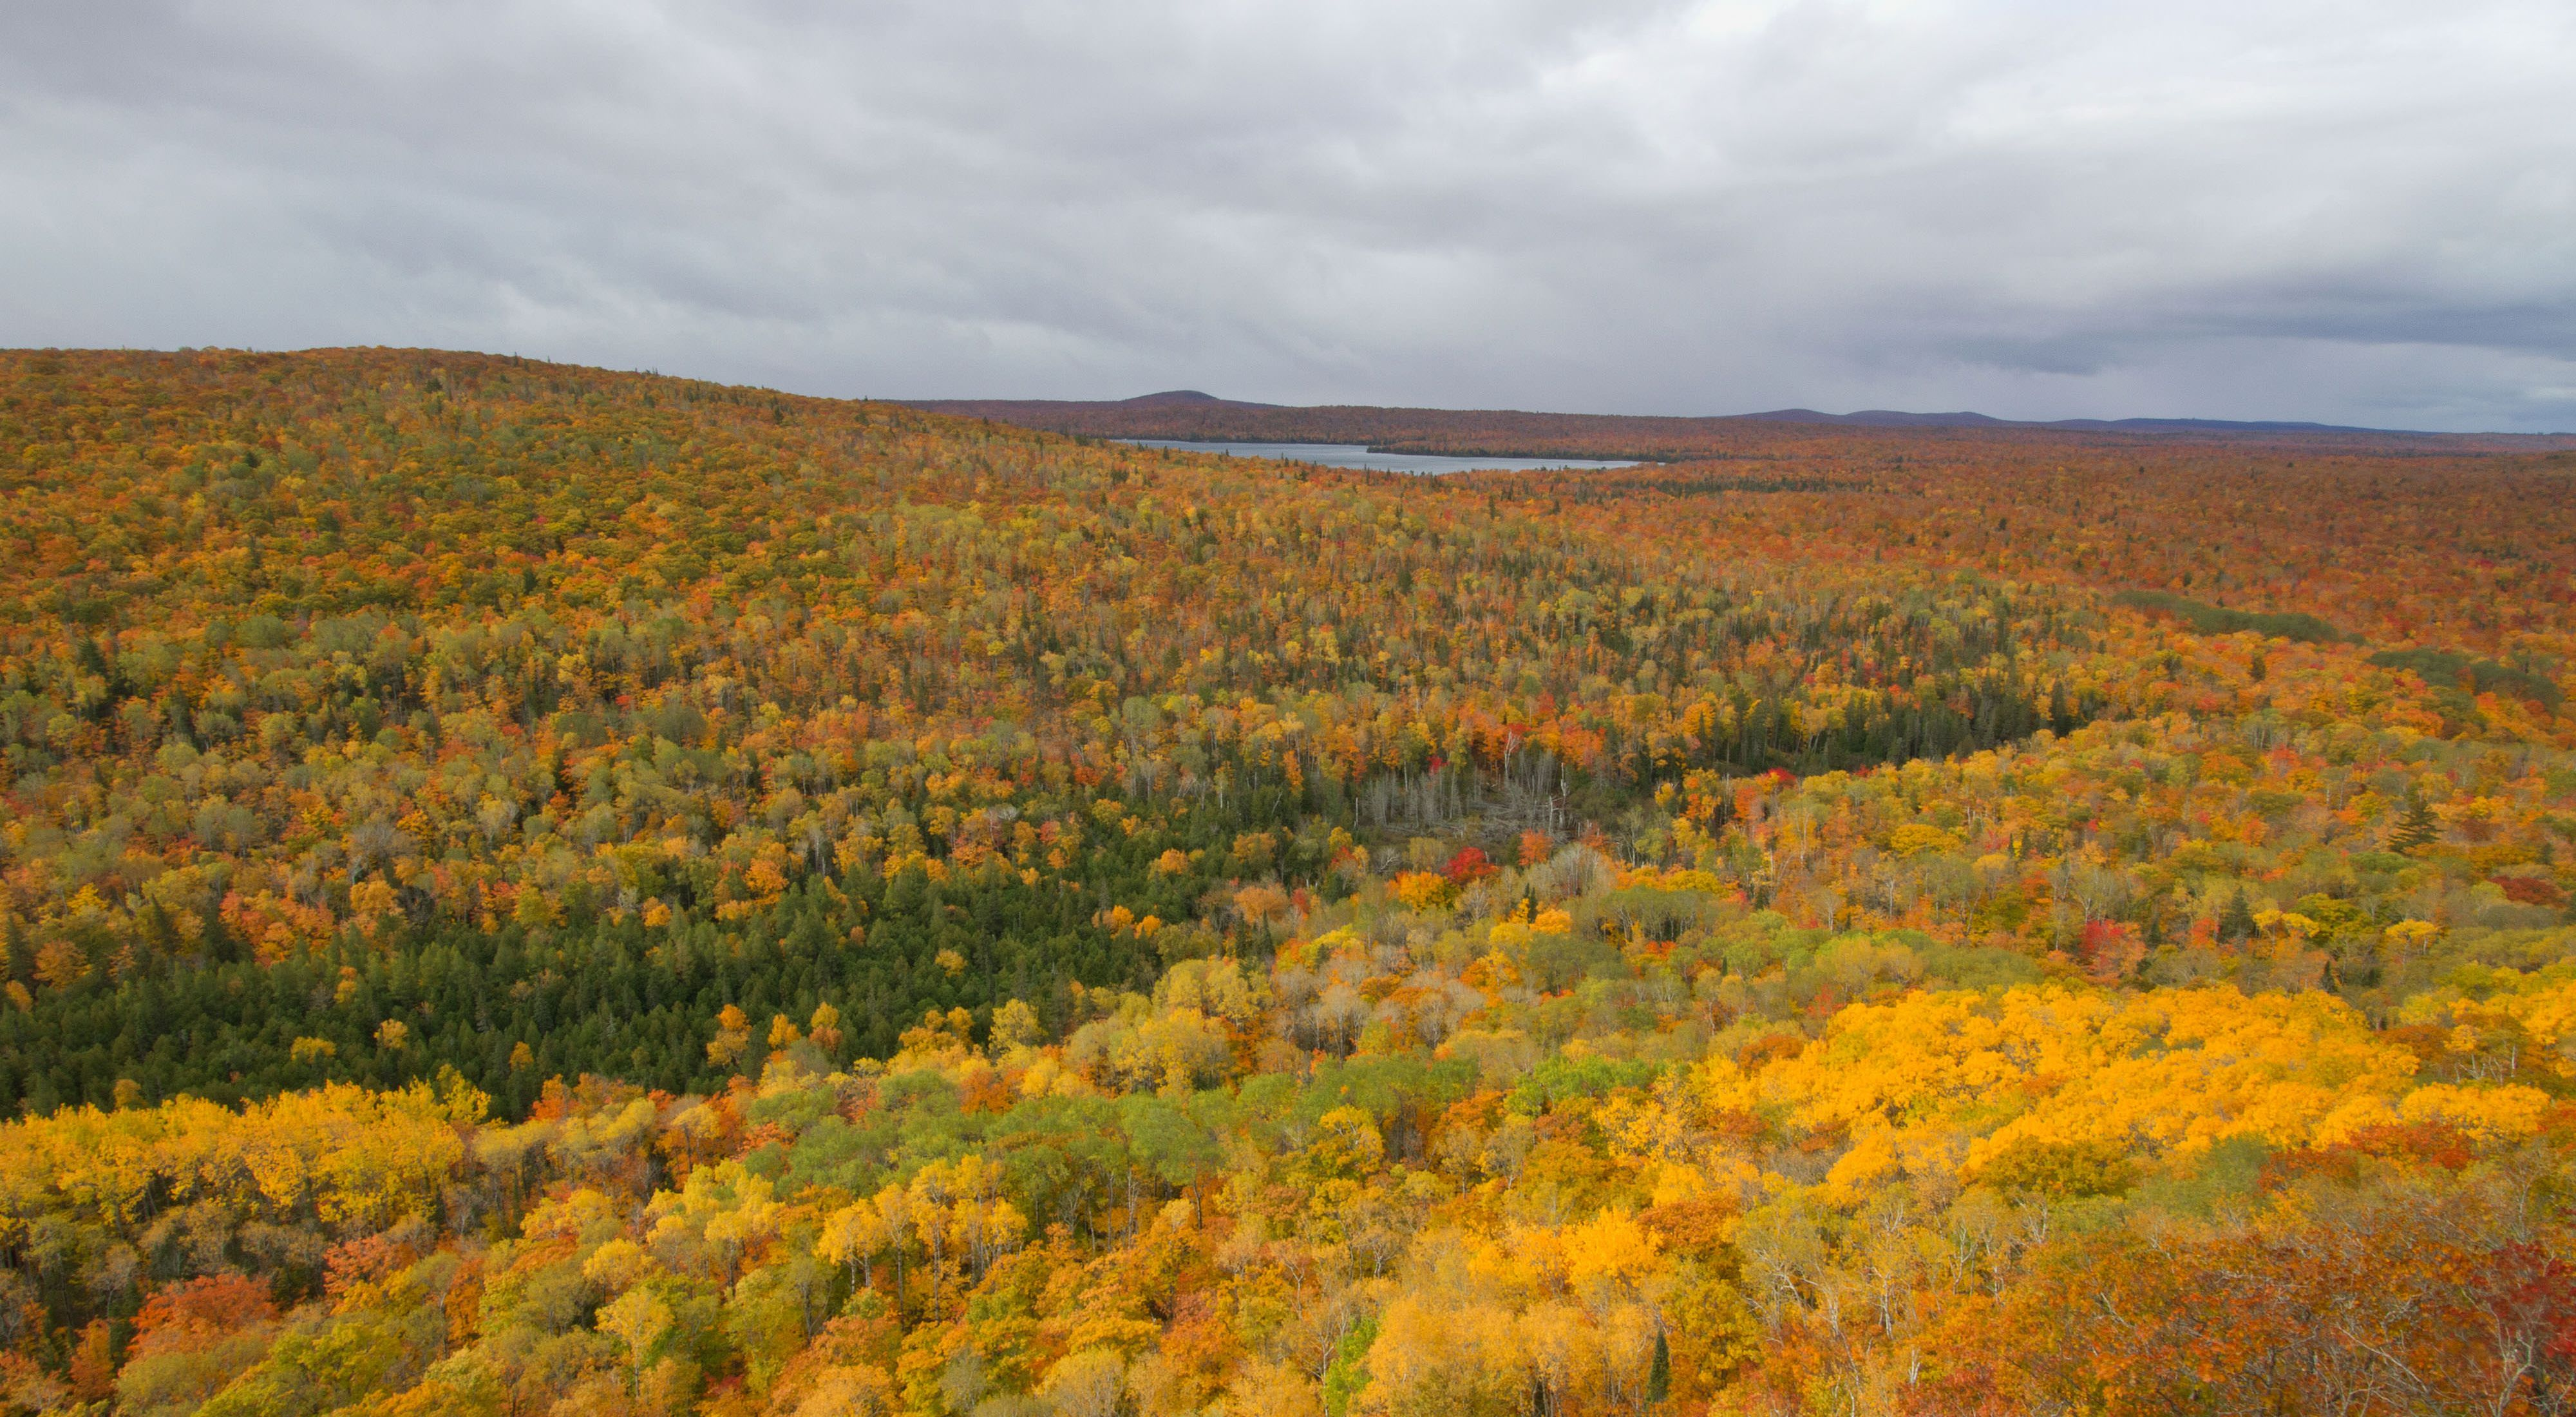 View from the summit of Brockway Mountain of  Michigan's Upper Peninsula forests in peak fall colors.